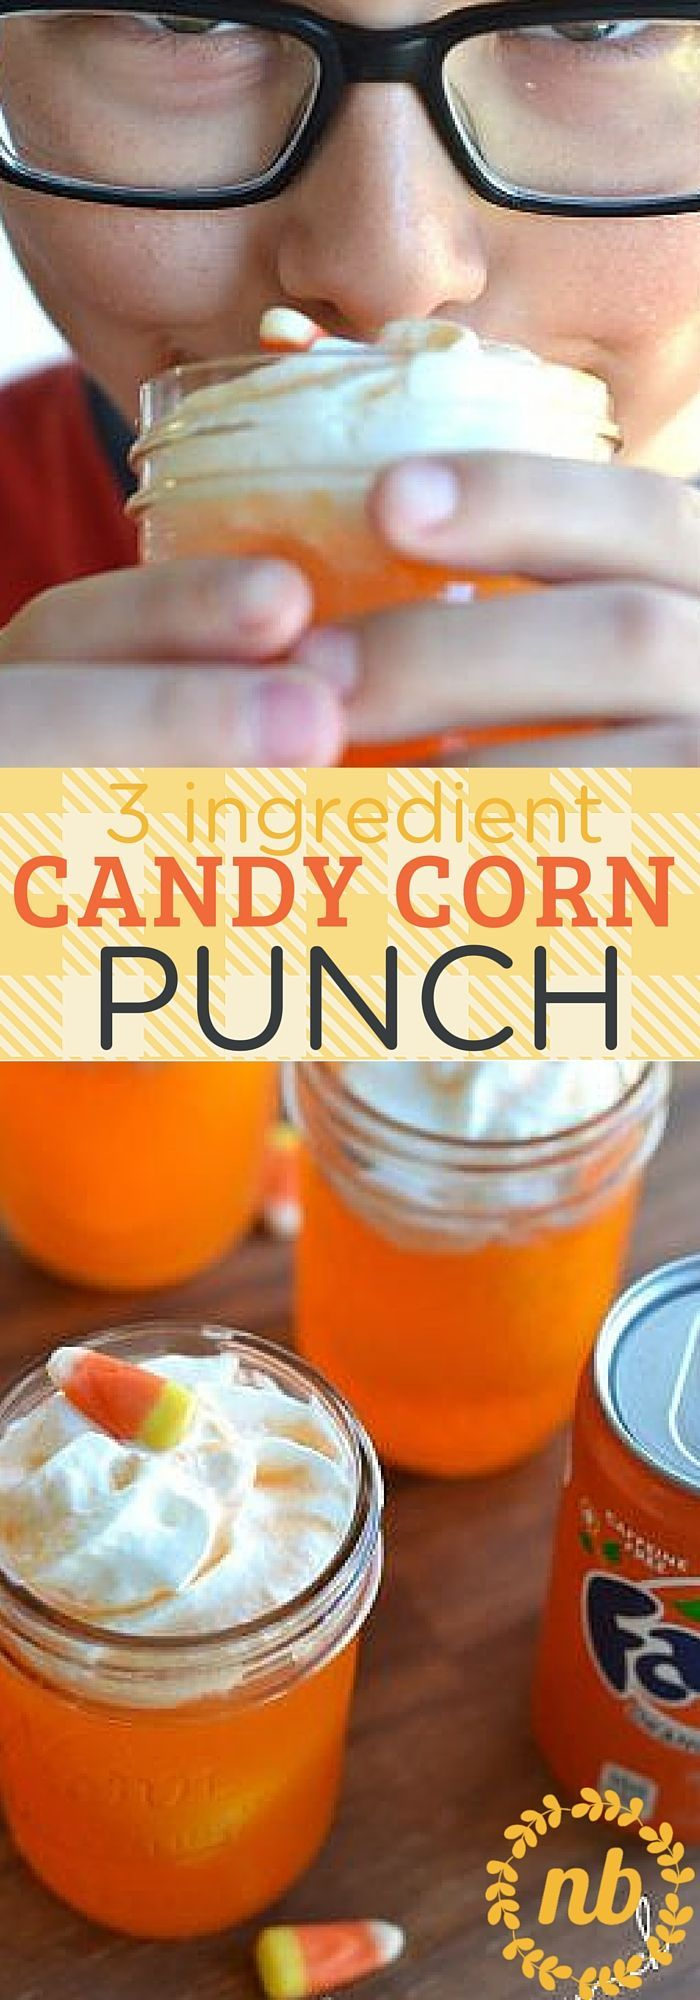 3 ingredient candy corn punch halloween party snackshalloween funhalloween - Fun Halloween Party Snacks